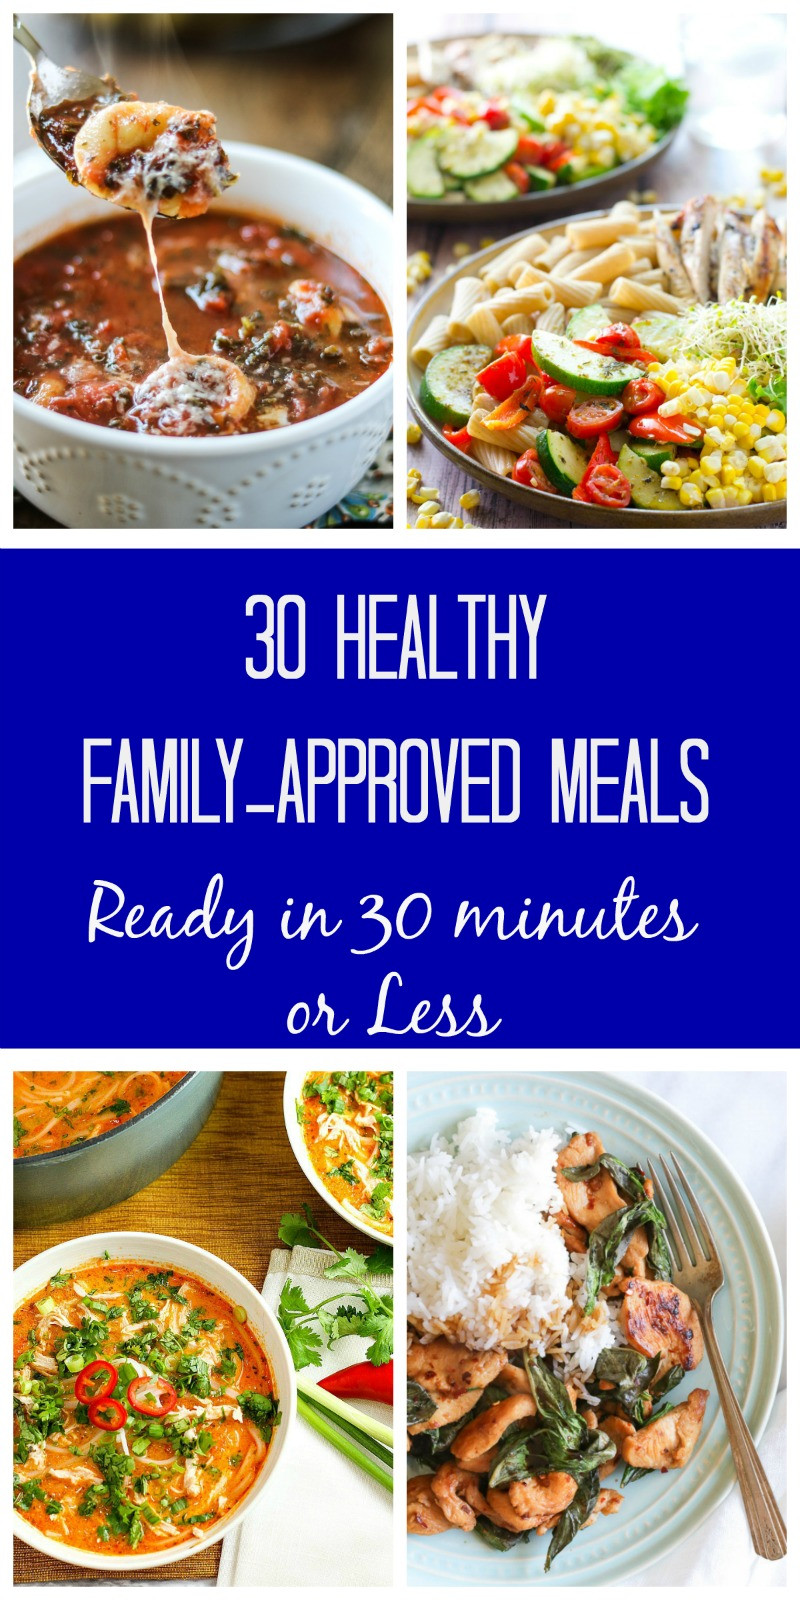 30 Minute Dinners  30 Meals Made in 30 Minutes A Month of 30 Minute Meals